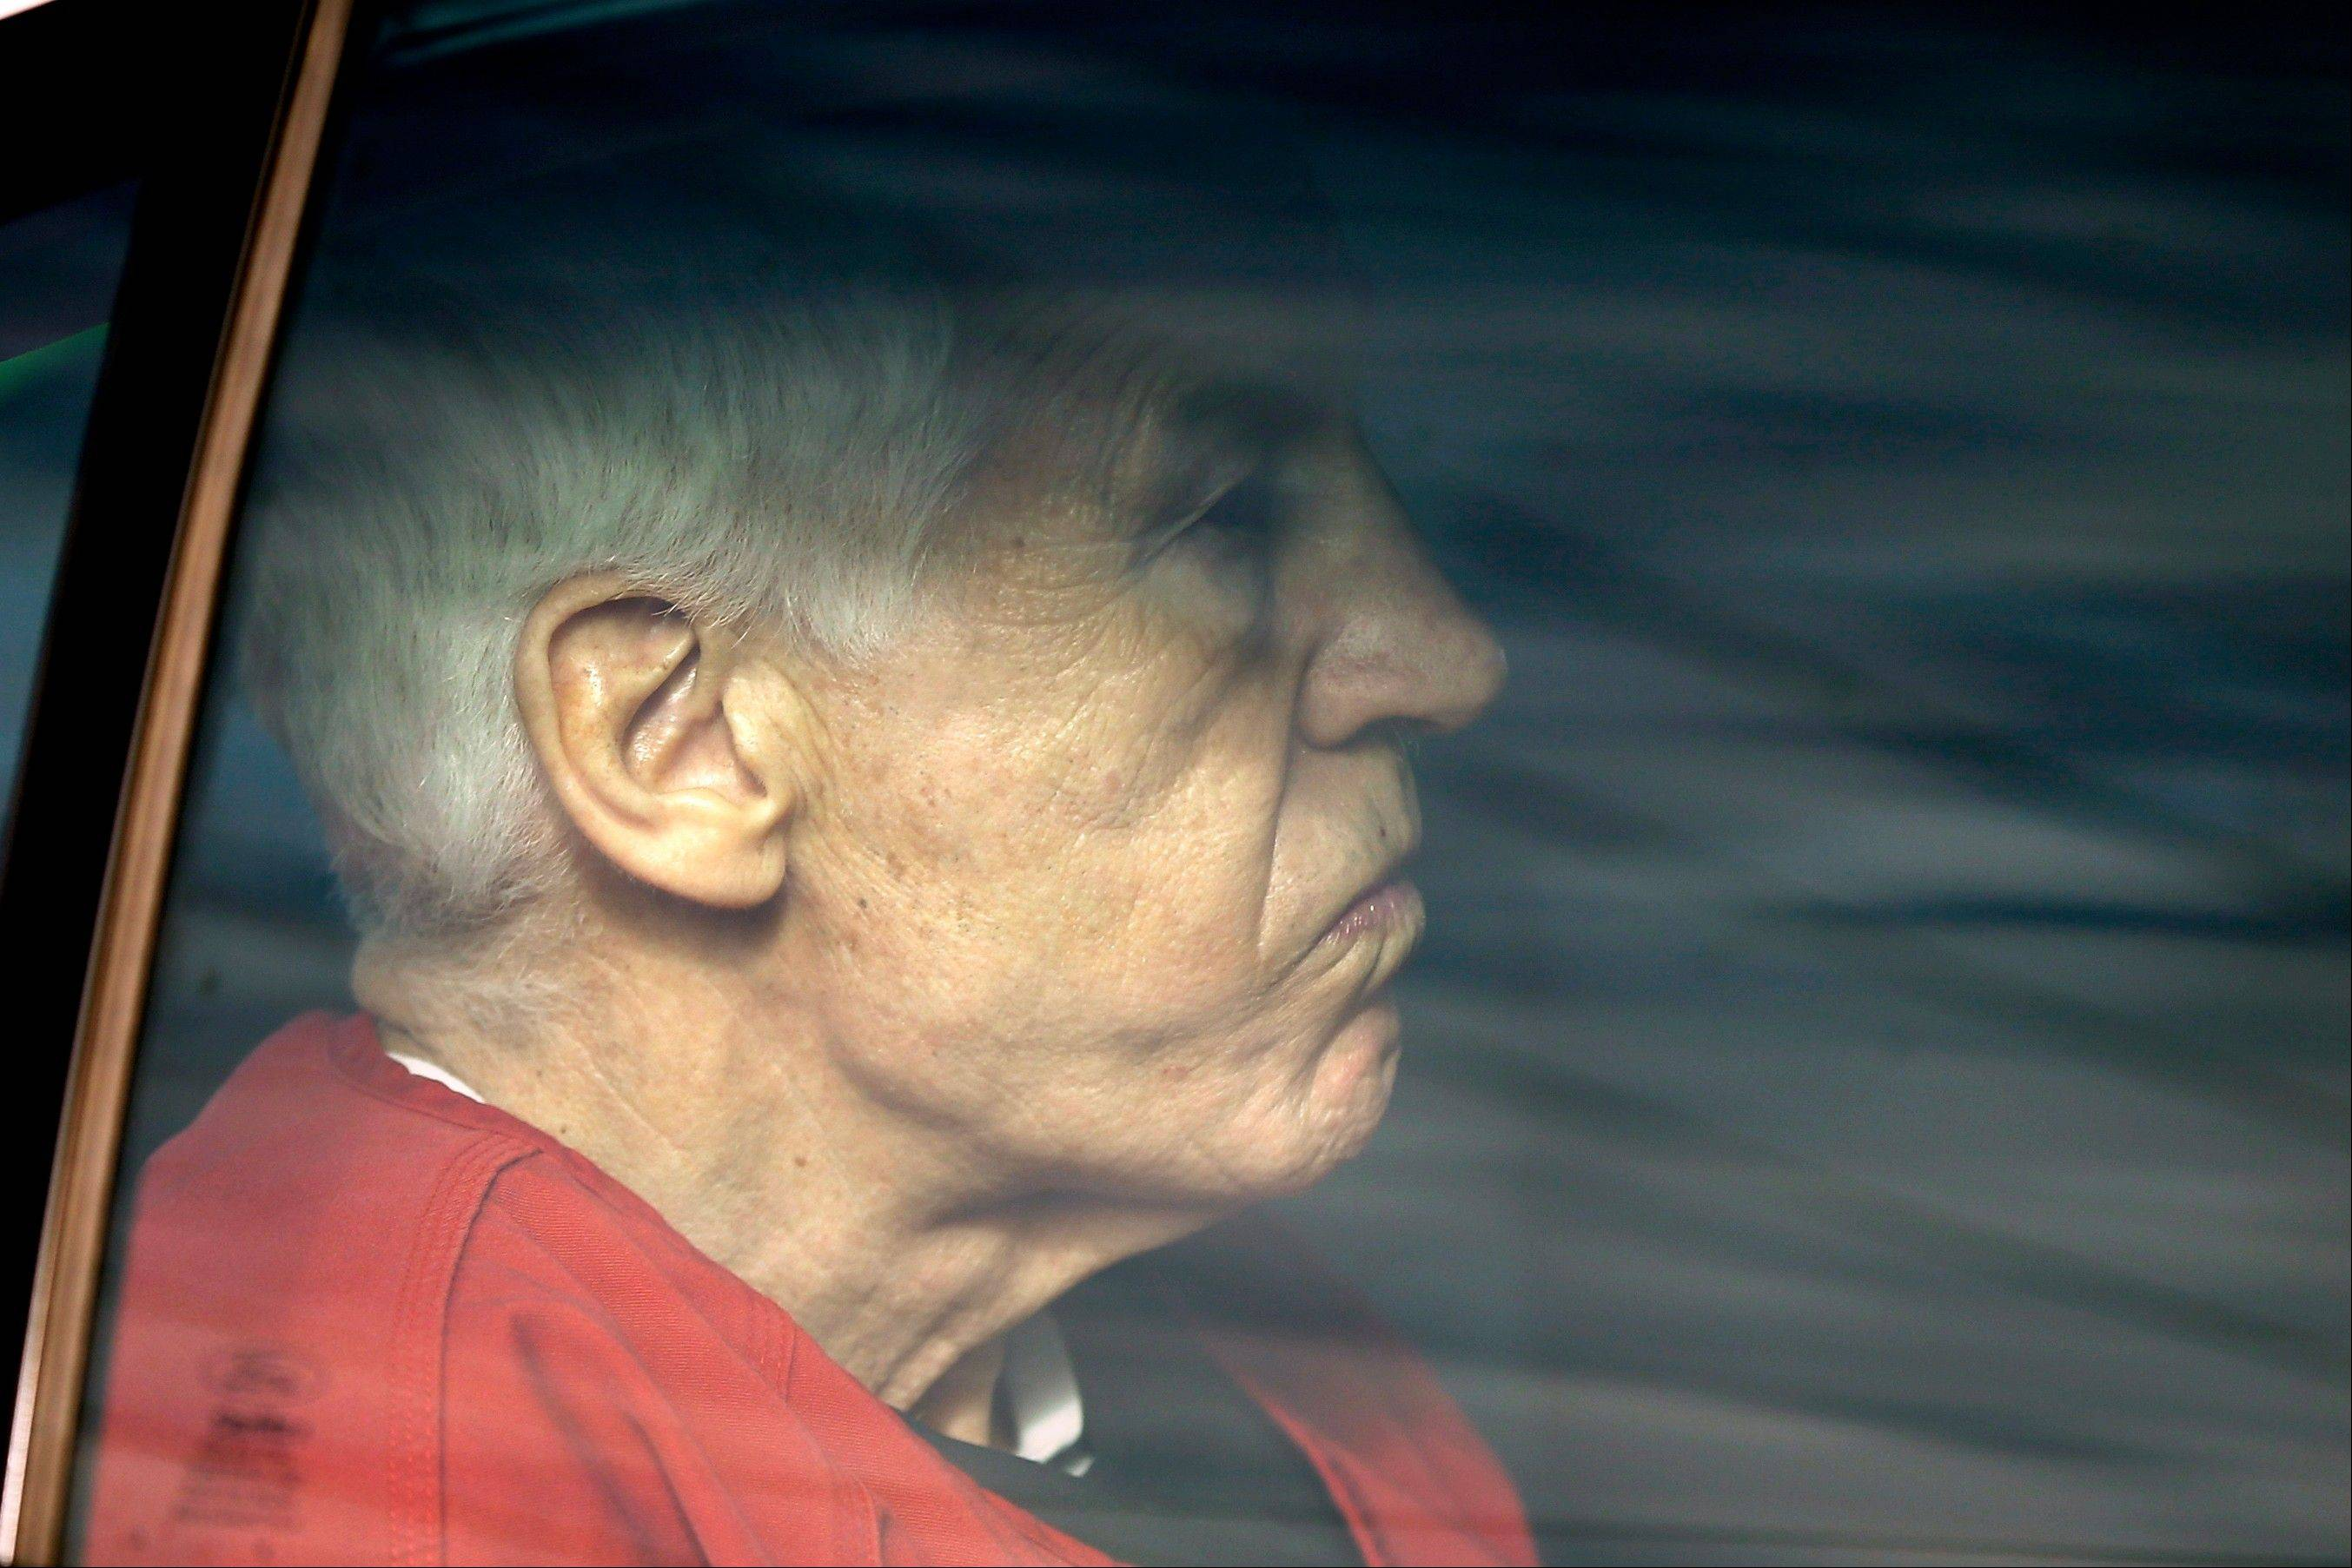 Former Penn State University assistant football coach Jerry Sandusky is driven from the Centre County Courthouse after being sentenced in Bellefonte, Pa., Tuesday, Oct. 9, 2012. Sandusky was sentenced to at least 30 years in prison, effectively a life sentence, in the child sexual abuse scandal that brought shame to Penn State and led to coach Joe Paterno's downfall.